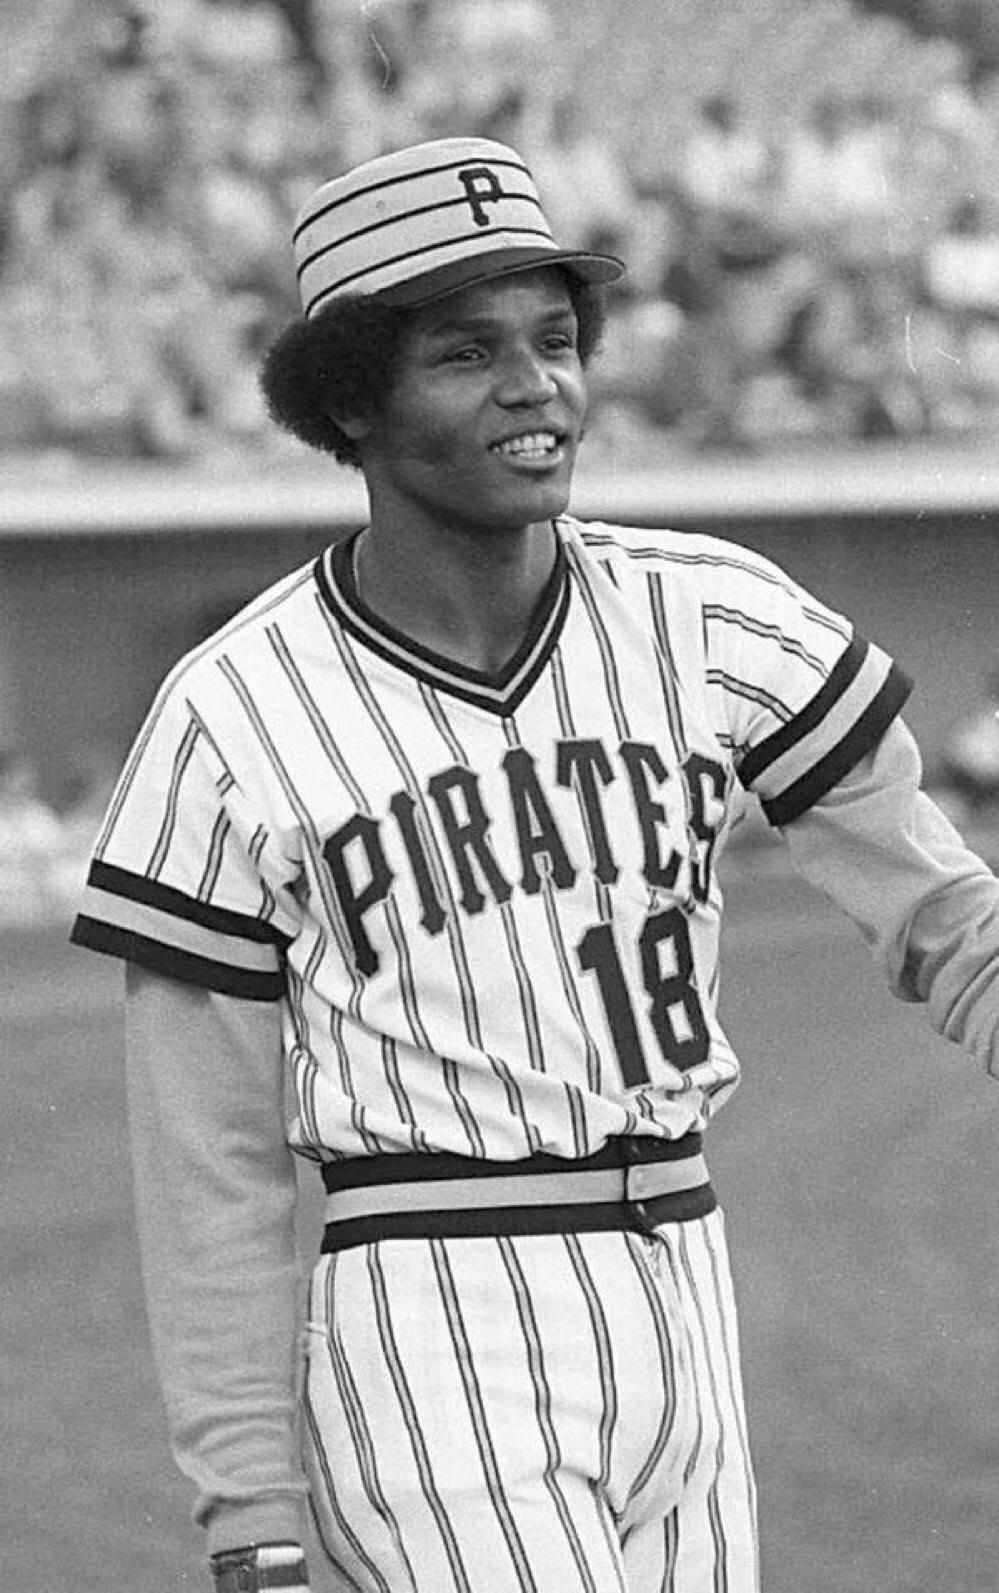 Omar Moreno averaged 66 stolen bases per year from '77-'82. He also averaged looking totally awesome. https://t.co/M6WGykNNgl